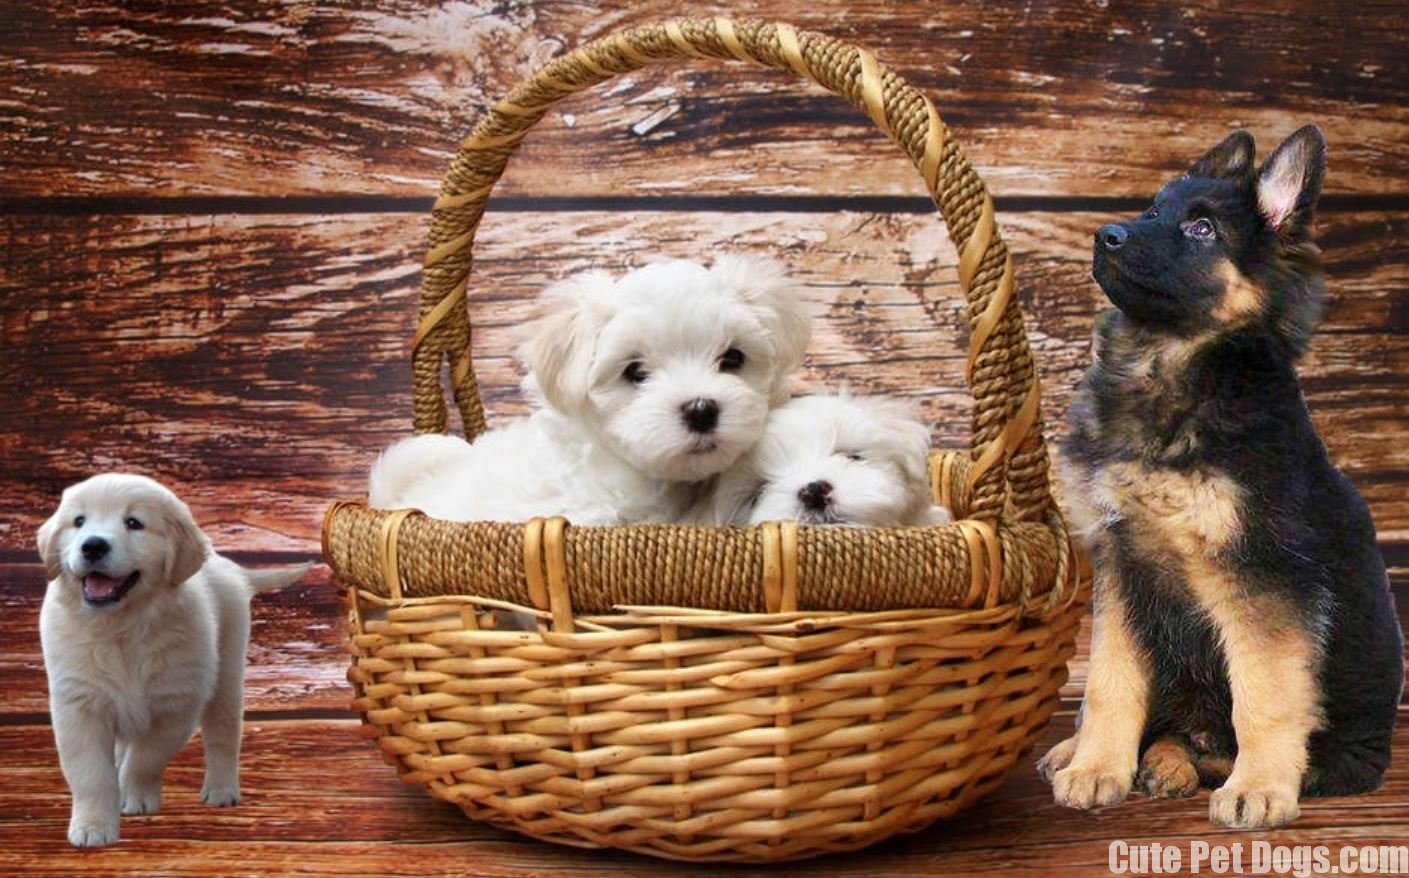 Cute Puppies For Sale Or Adopt A Dog Cute Pet Dogs